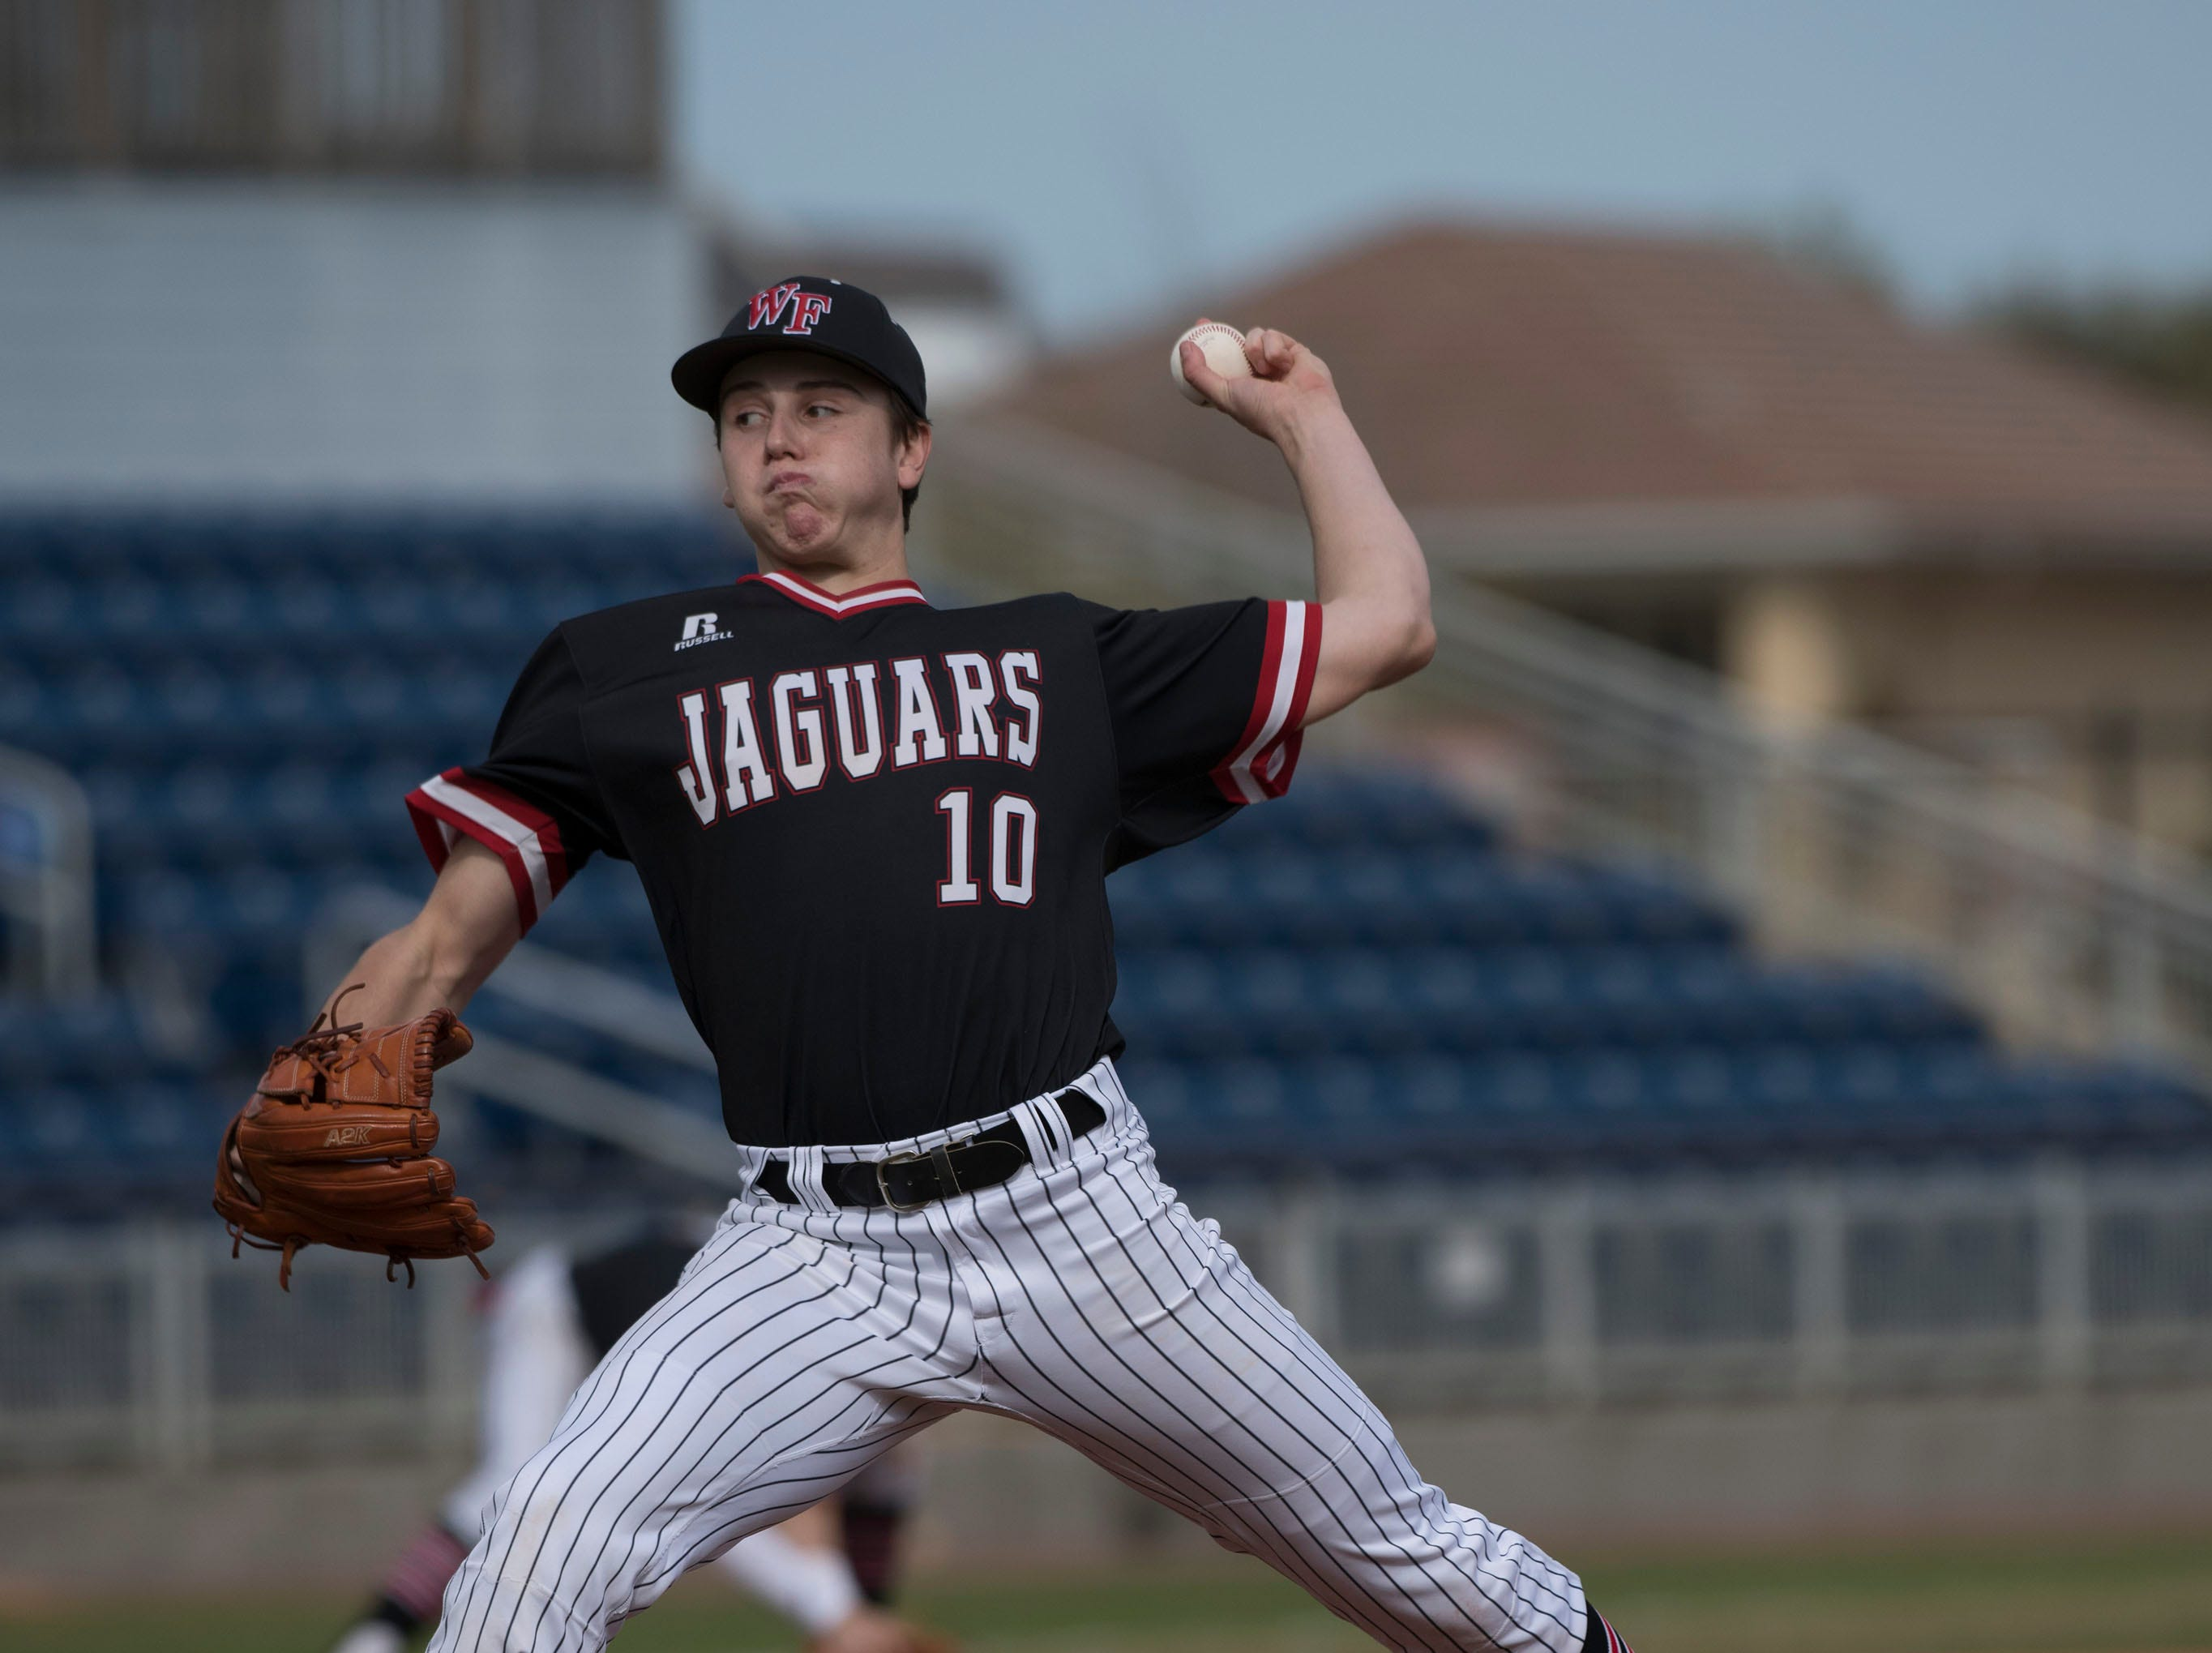 West Florida High School's pitcher, Graham Holland, (No. 10) gets off to a rocky start against Pace High School during the opening game of the Battle of the Bay baseball tournament at Blue Wahoos Stadium on Tuesday, March 12, 2019.